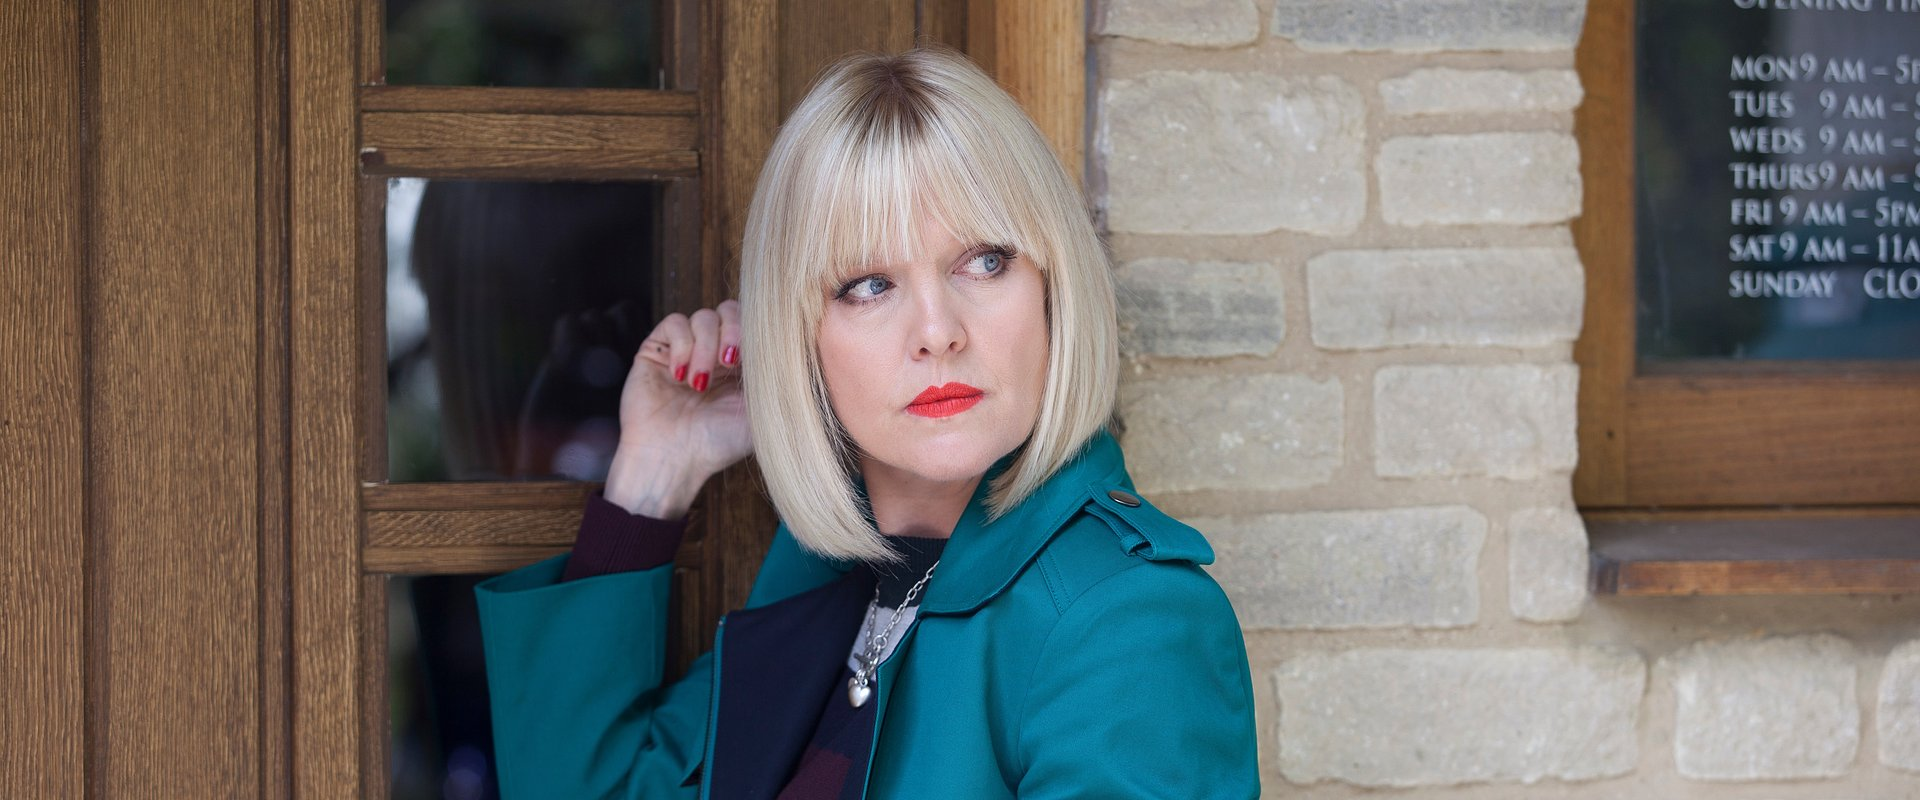 'AGATHA RAISIN' É A NOVA DETETIVE CURIOSA E PERSPICAZ DO FOX CRIME